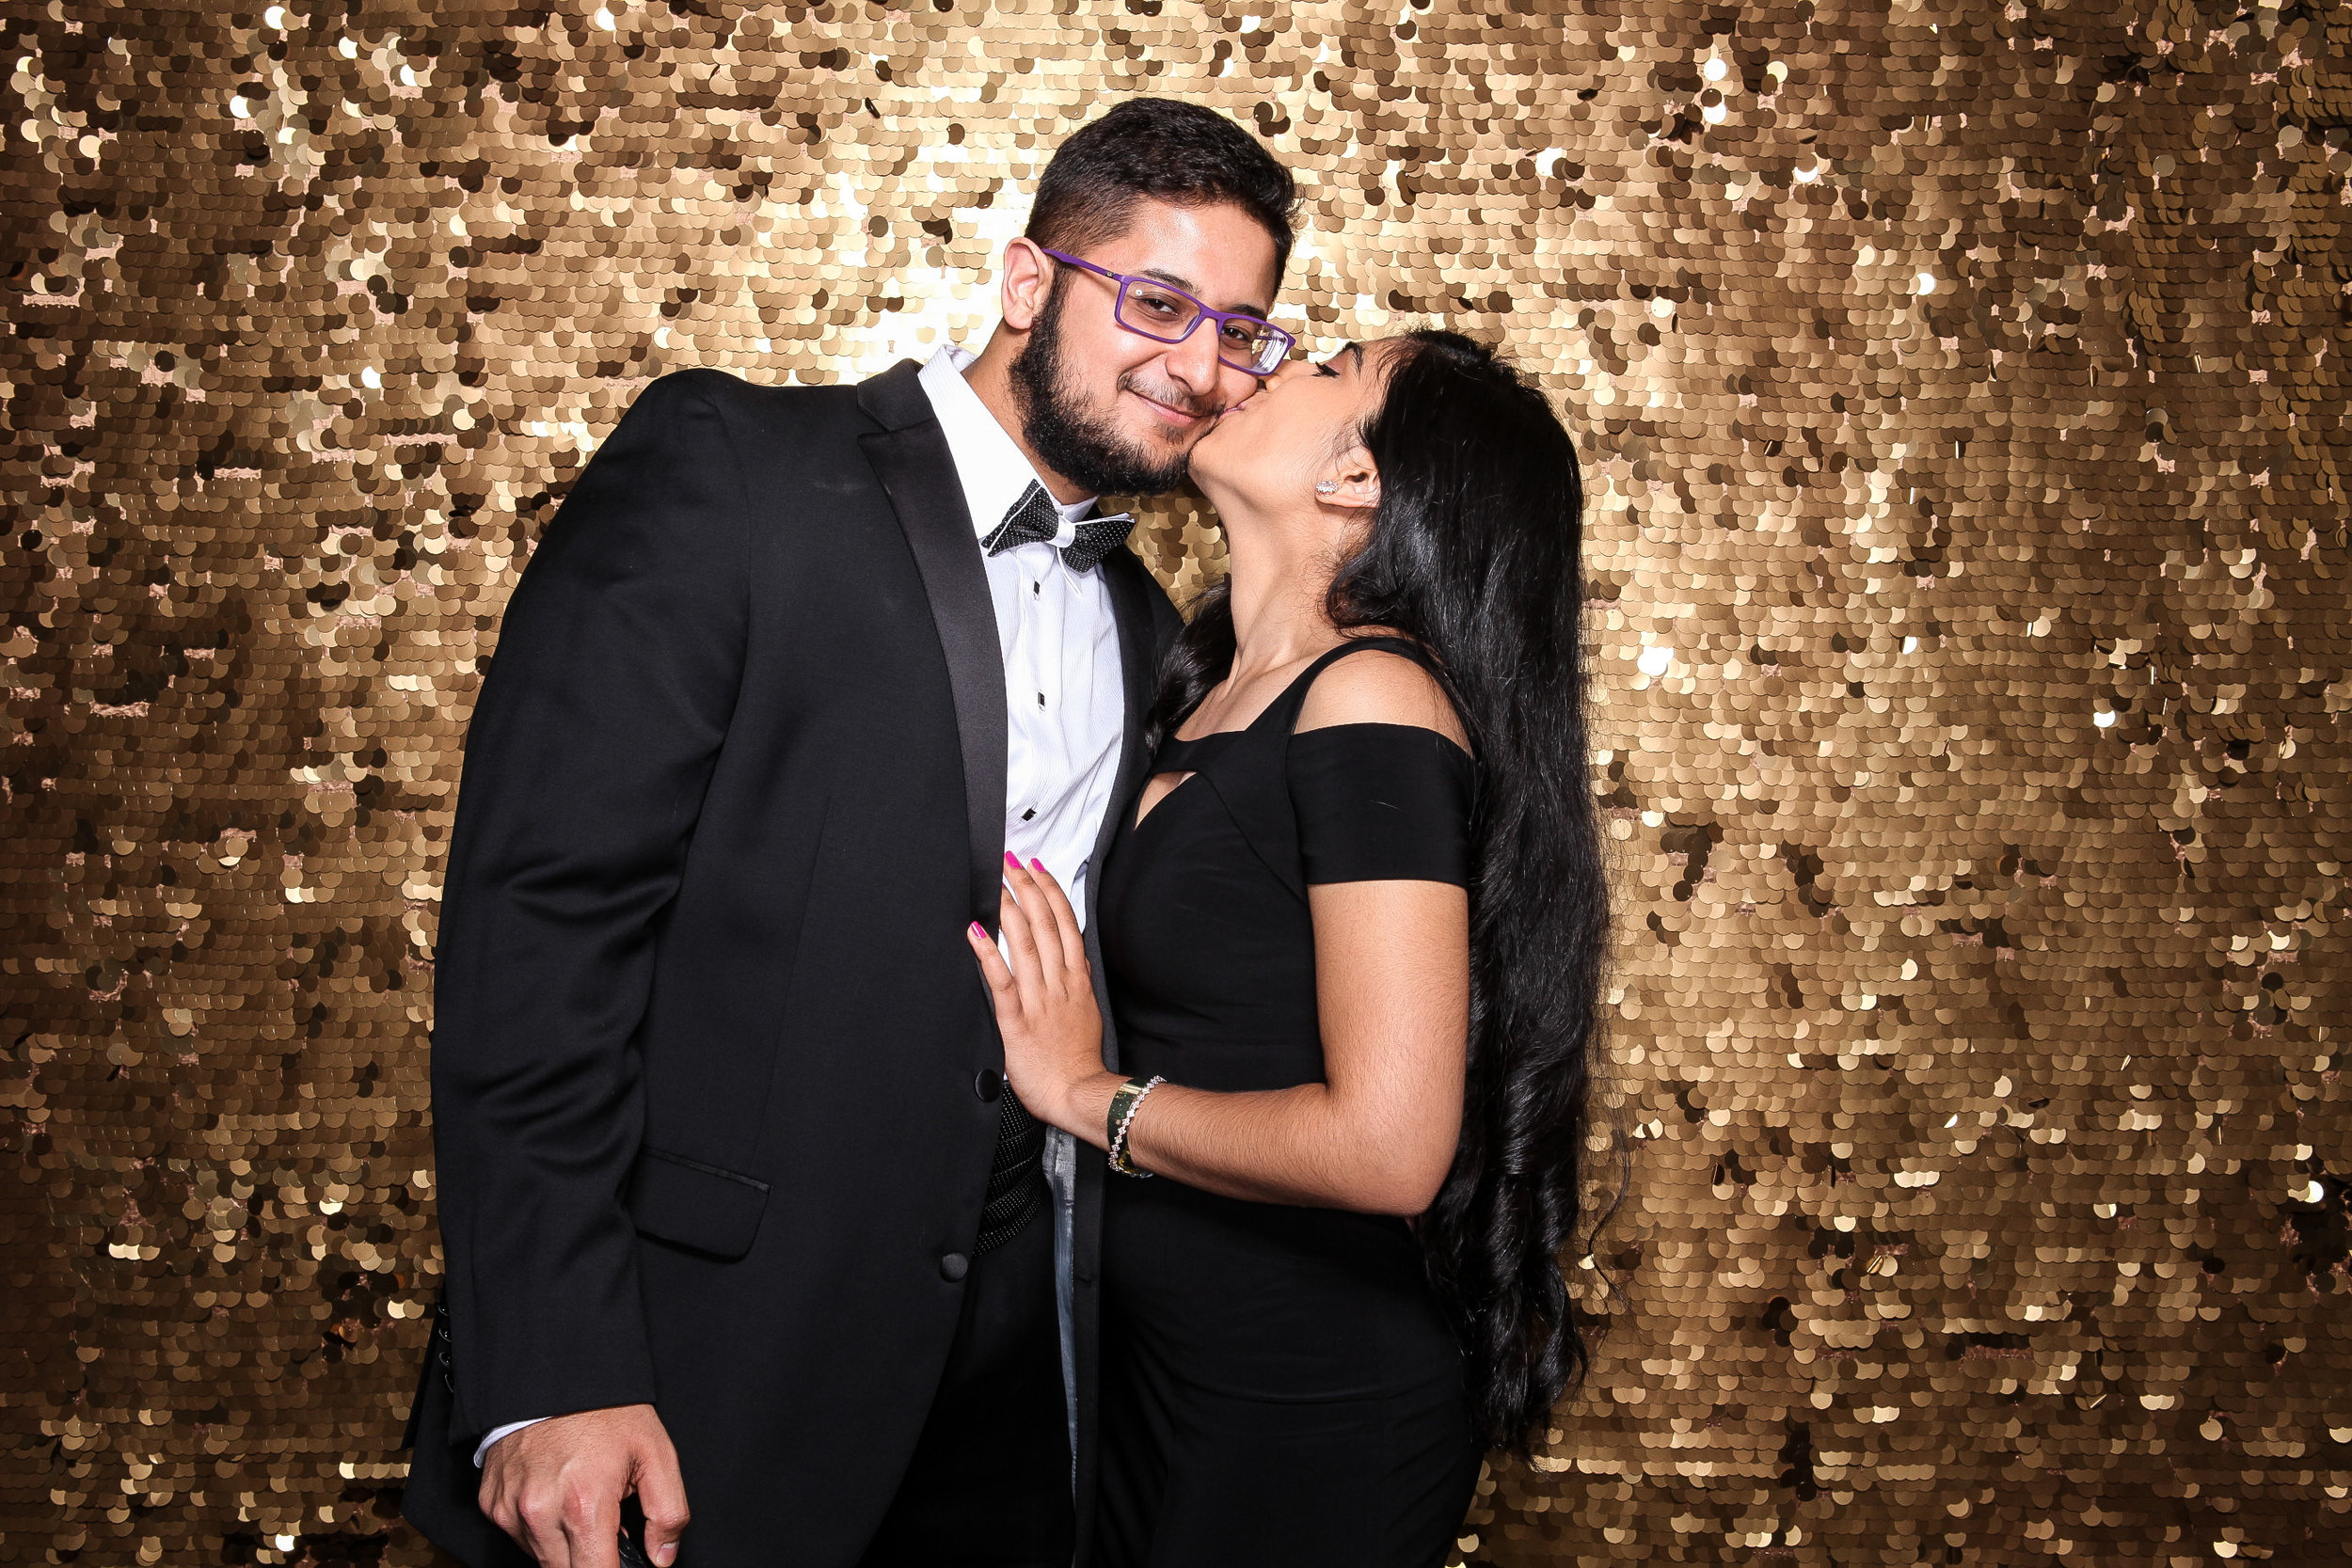 20190503_Adelphi_Senior_Formal-041.jpg